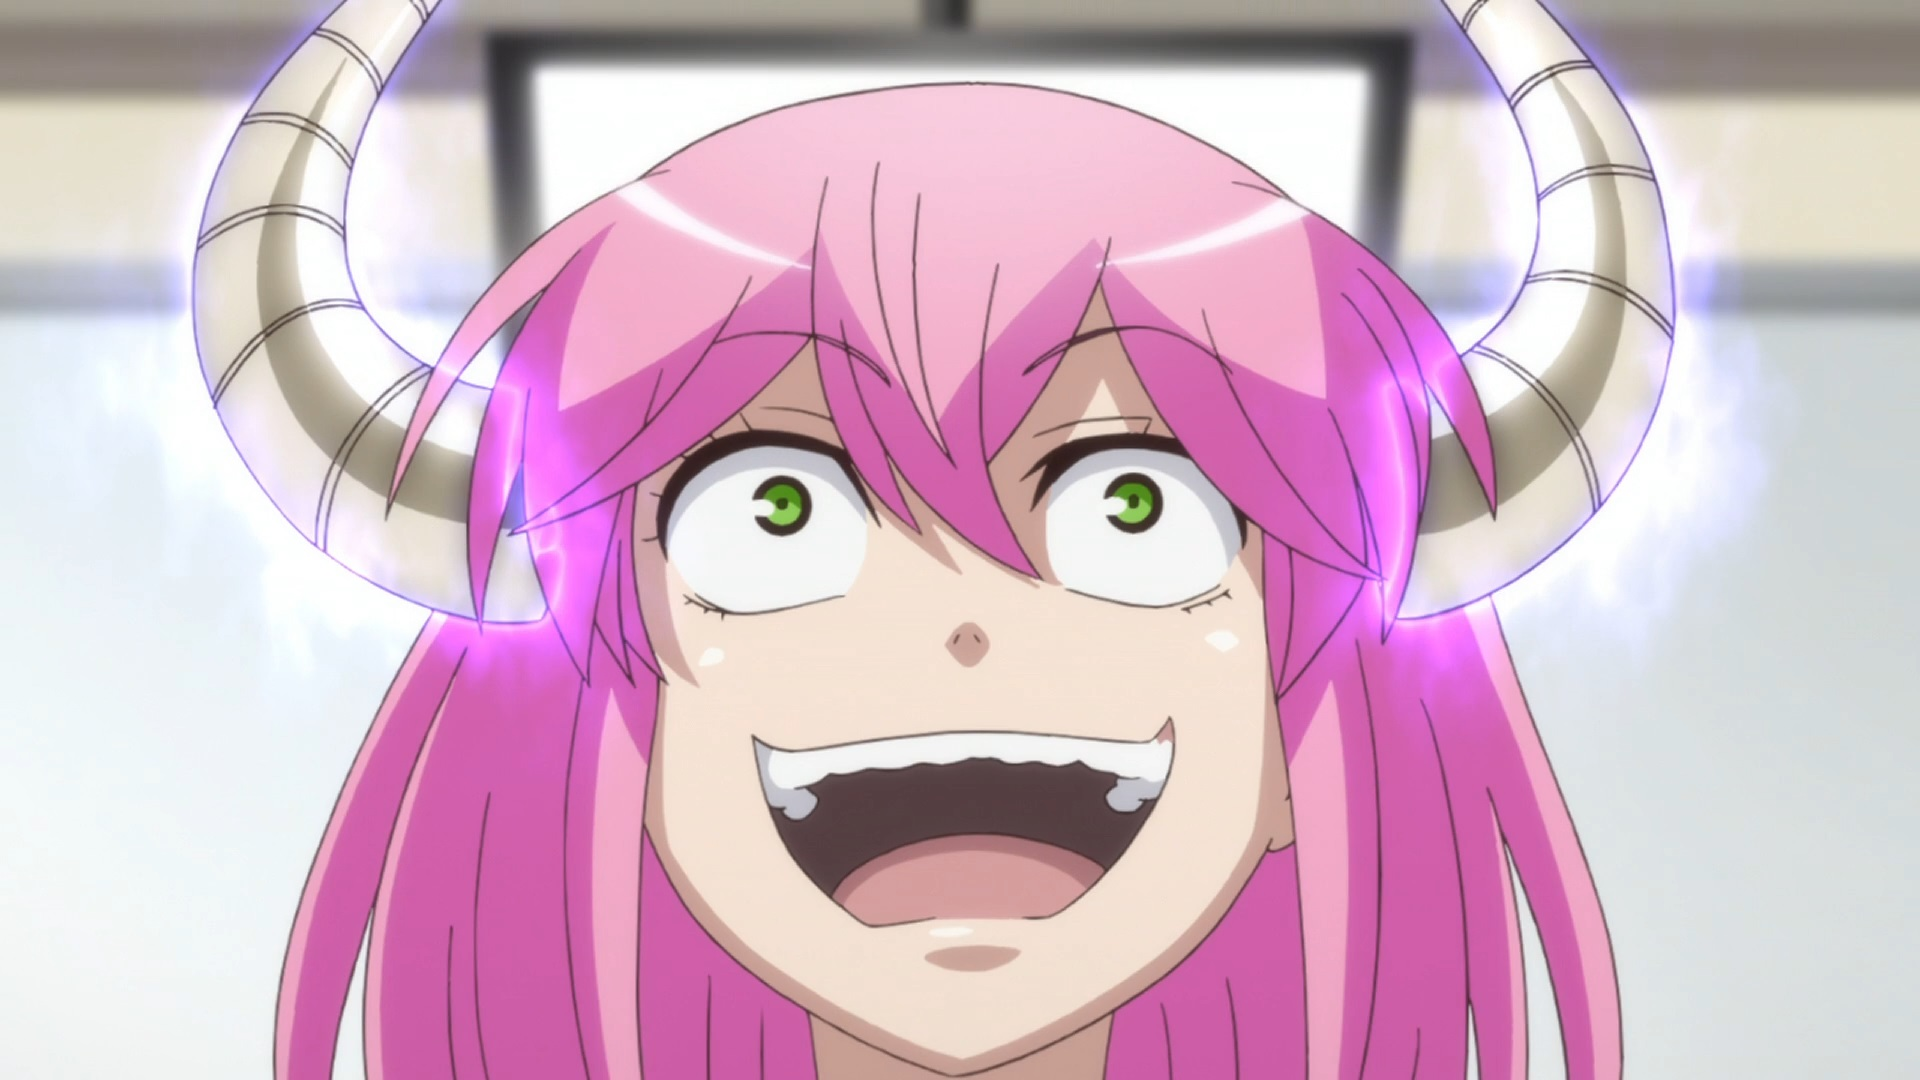 Akane Koumoto, a tiny but powerful demon posing as a high school principal, laughs maniacally in a scene from the Actually, I Am. TV anime.